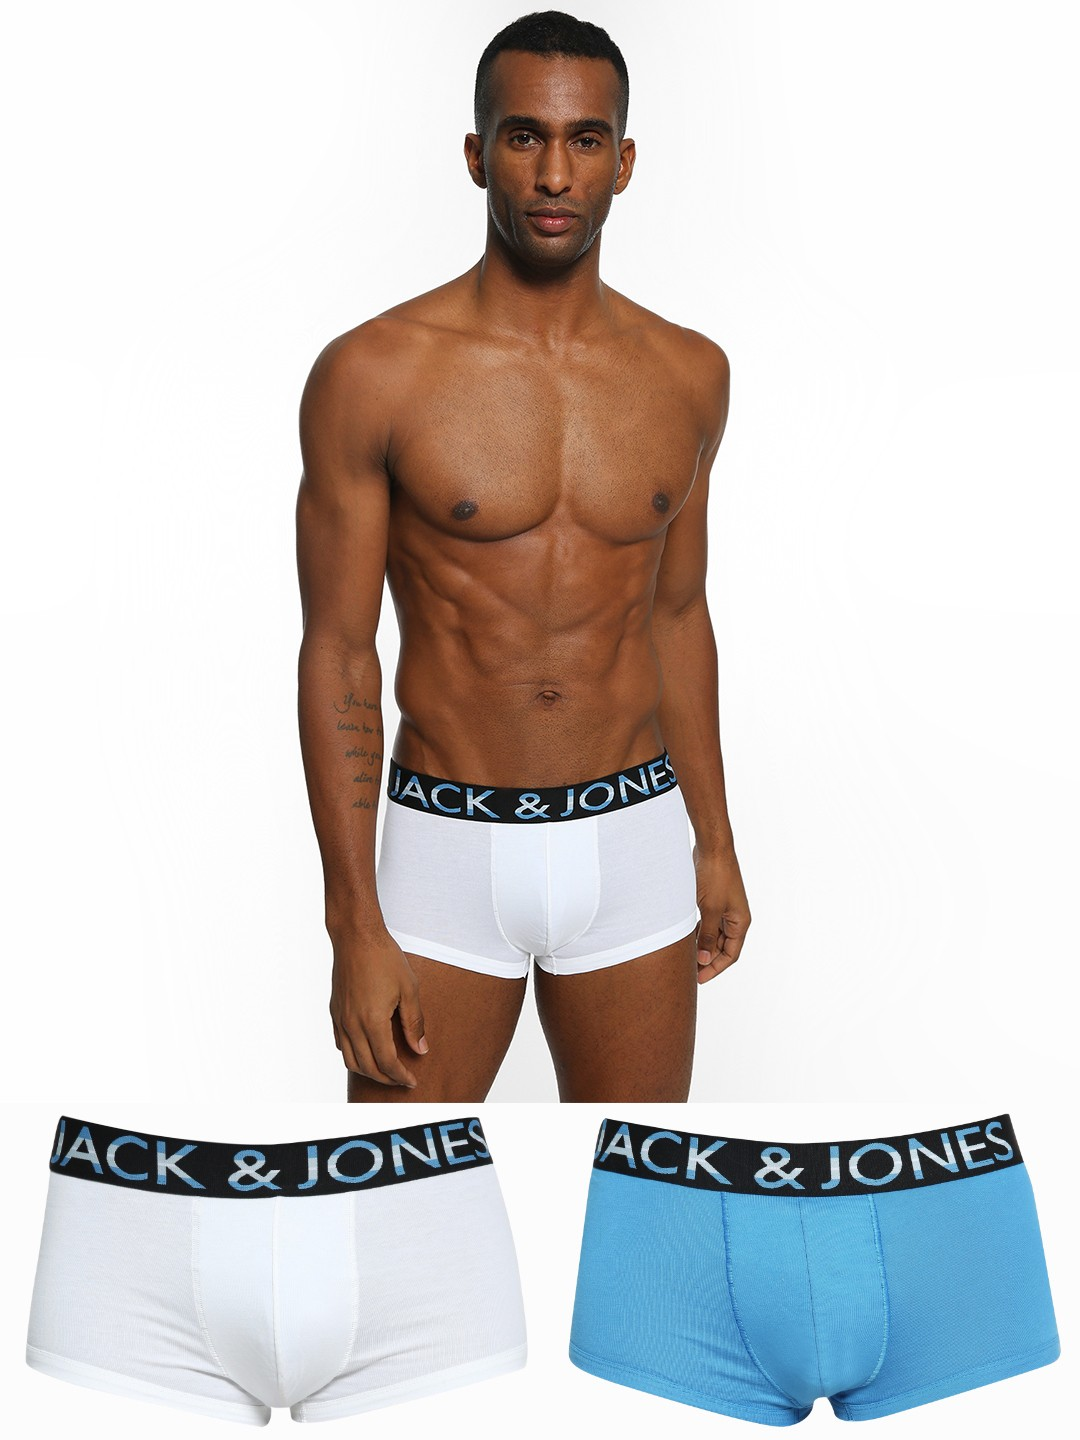 Jack & Jones Multi Basic Logo Waistband Trunks (Pack Of 2) 1